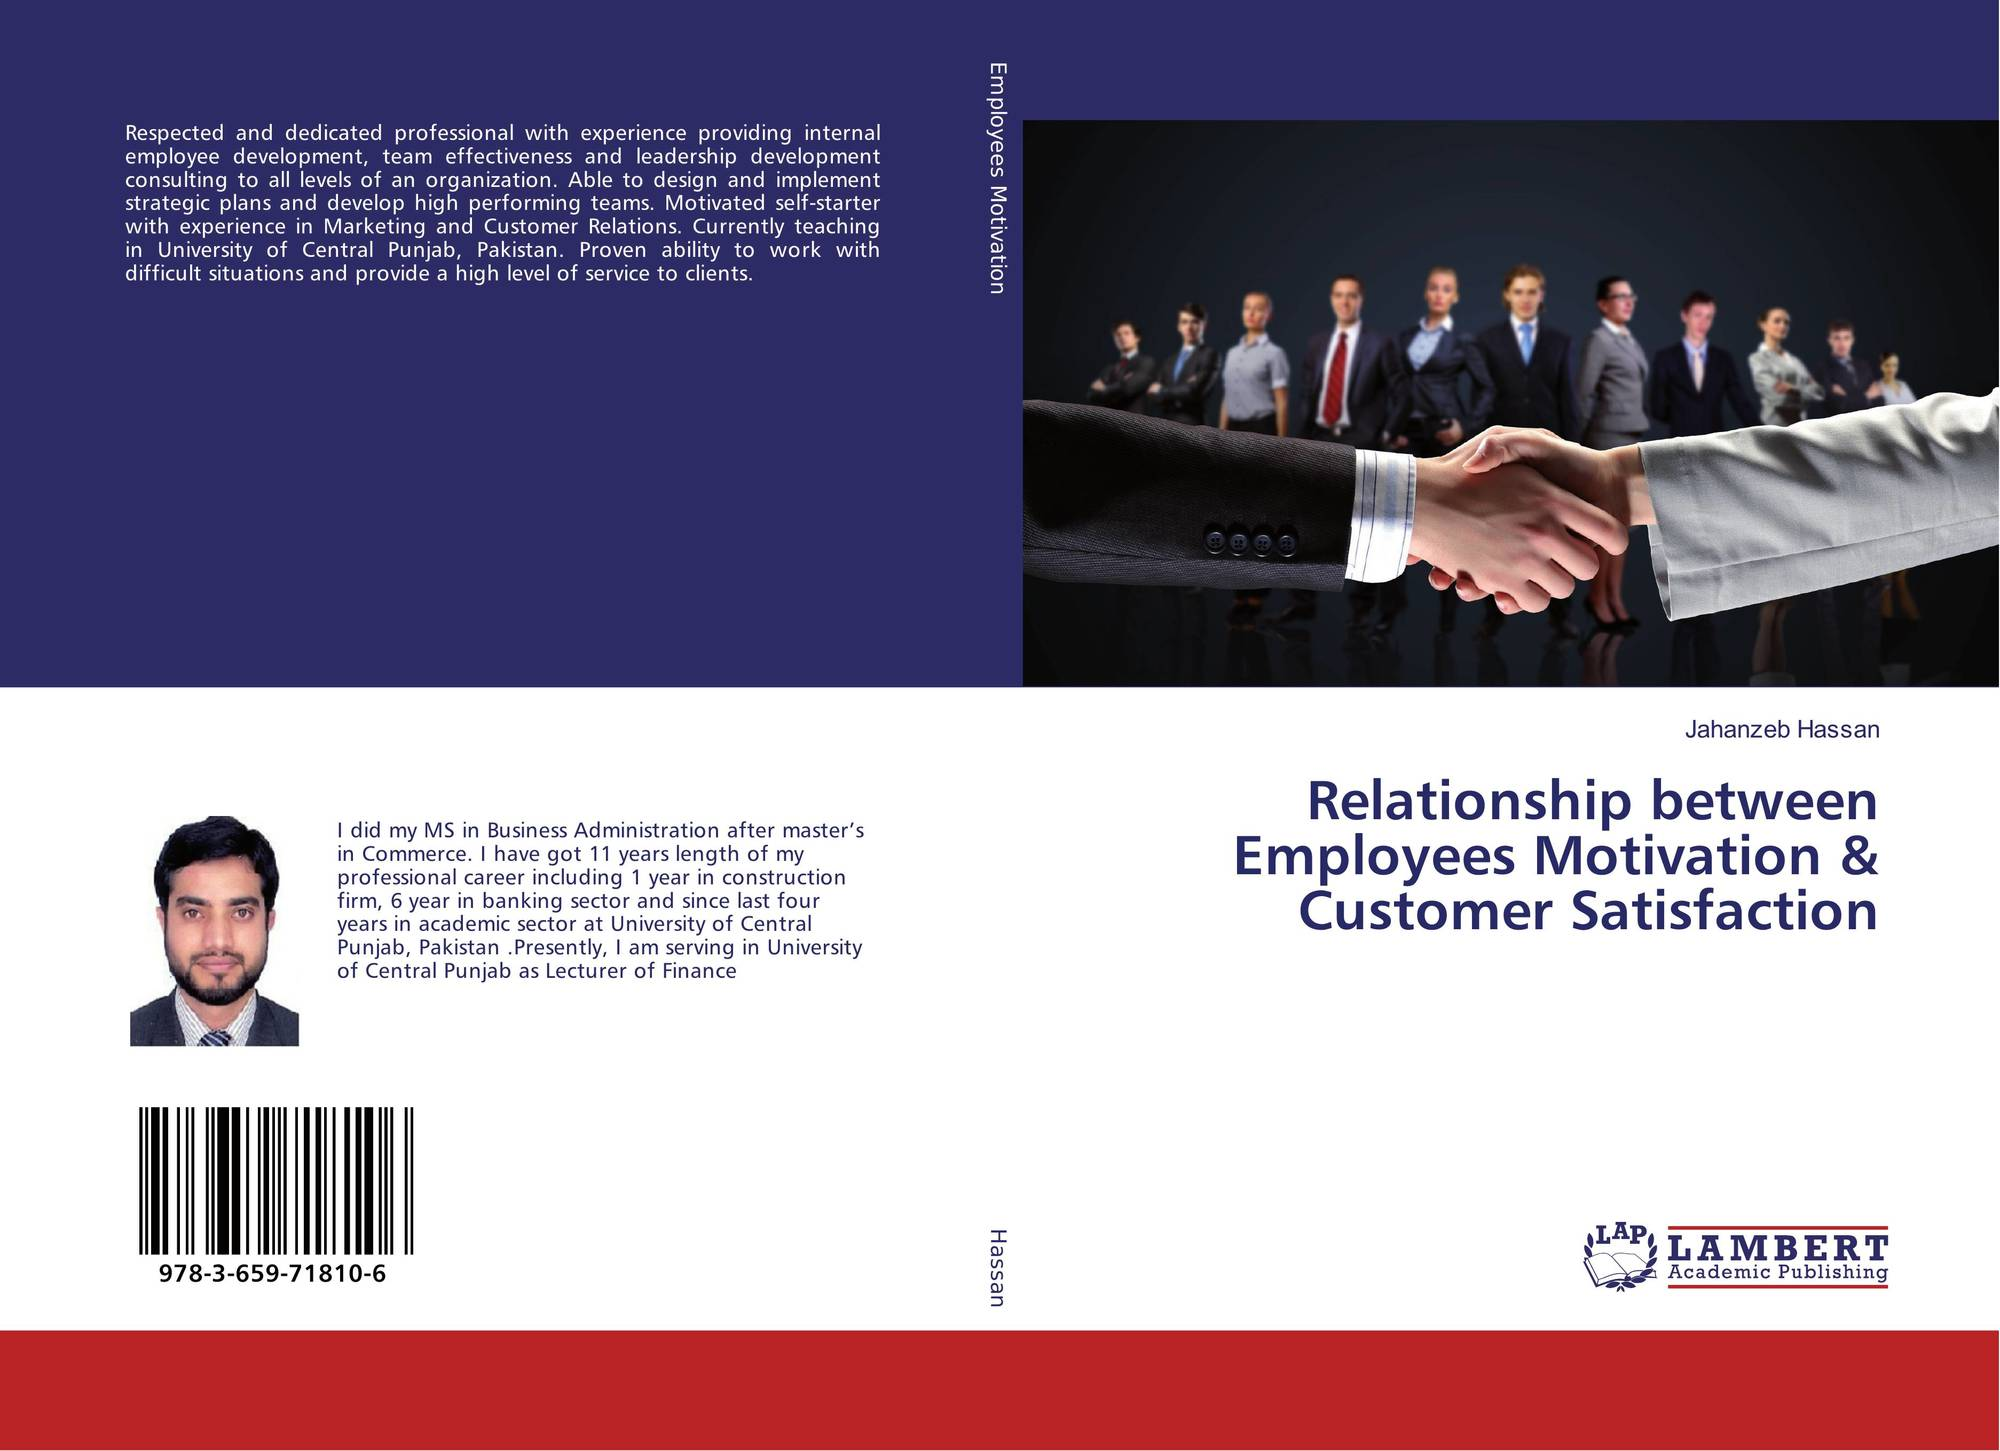 the relationship between employee motivation and